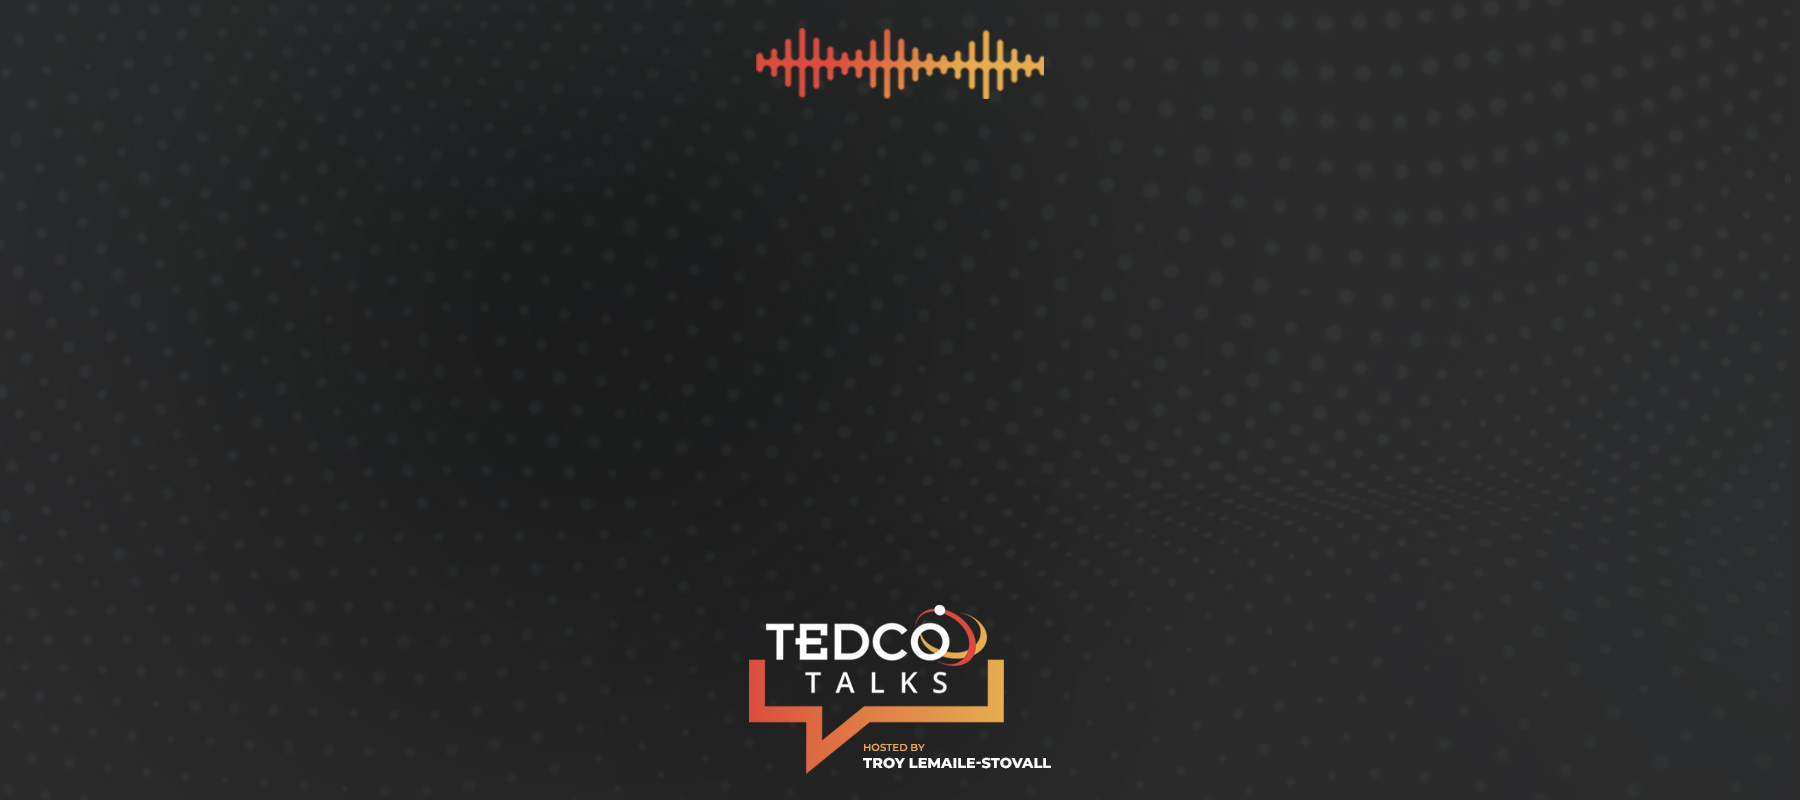 TEDCO Talks logo